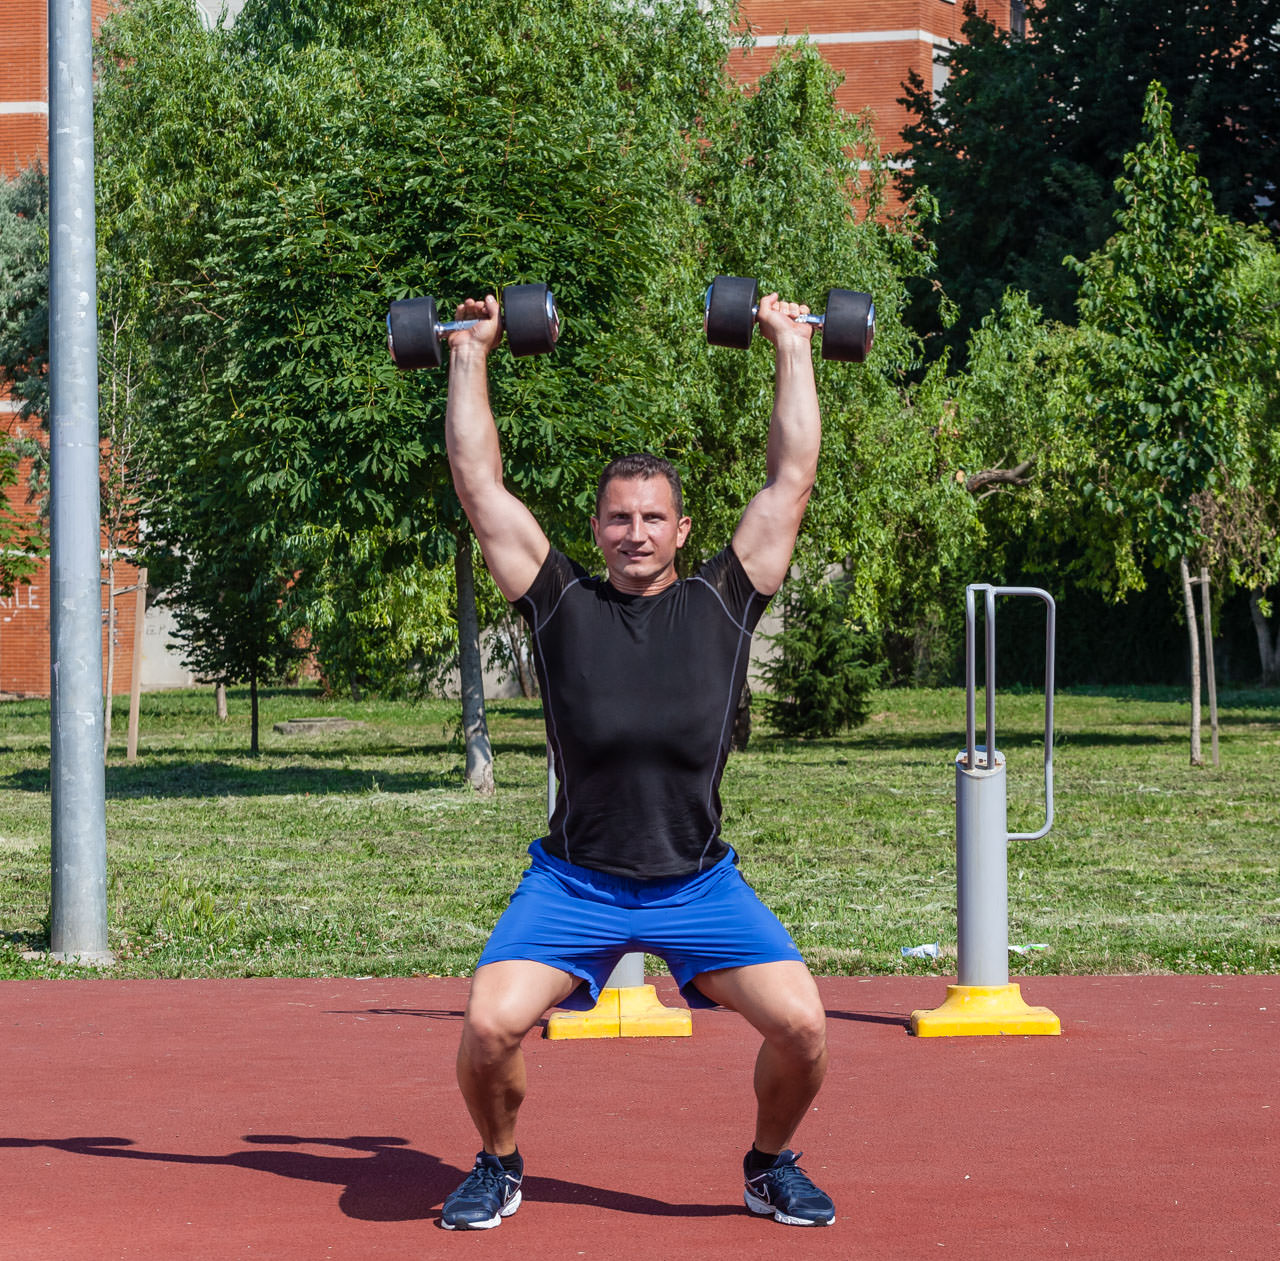 Two-Arm Dumbbell Snatch frame #2